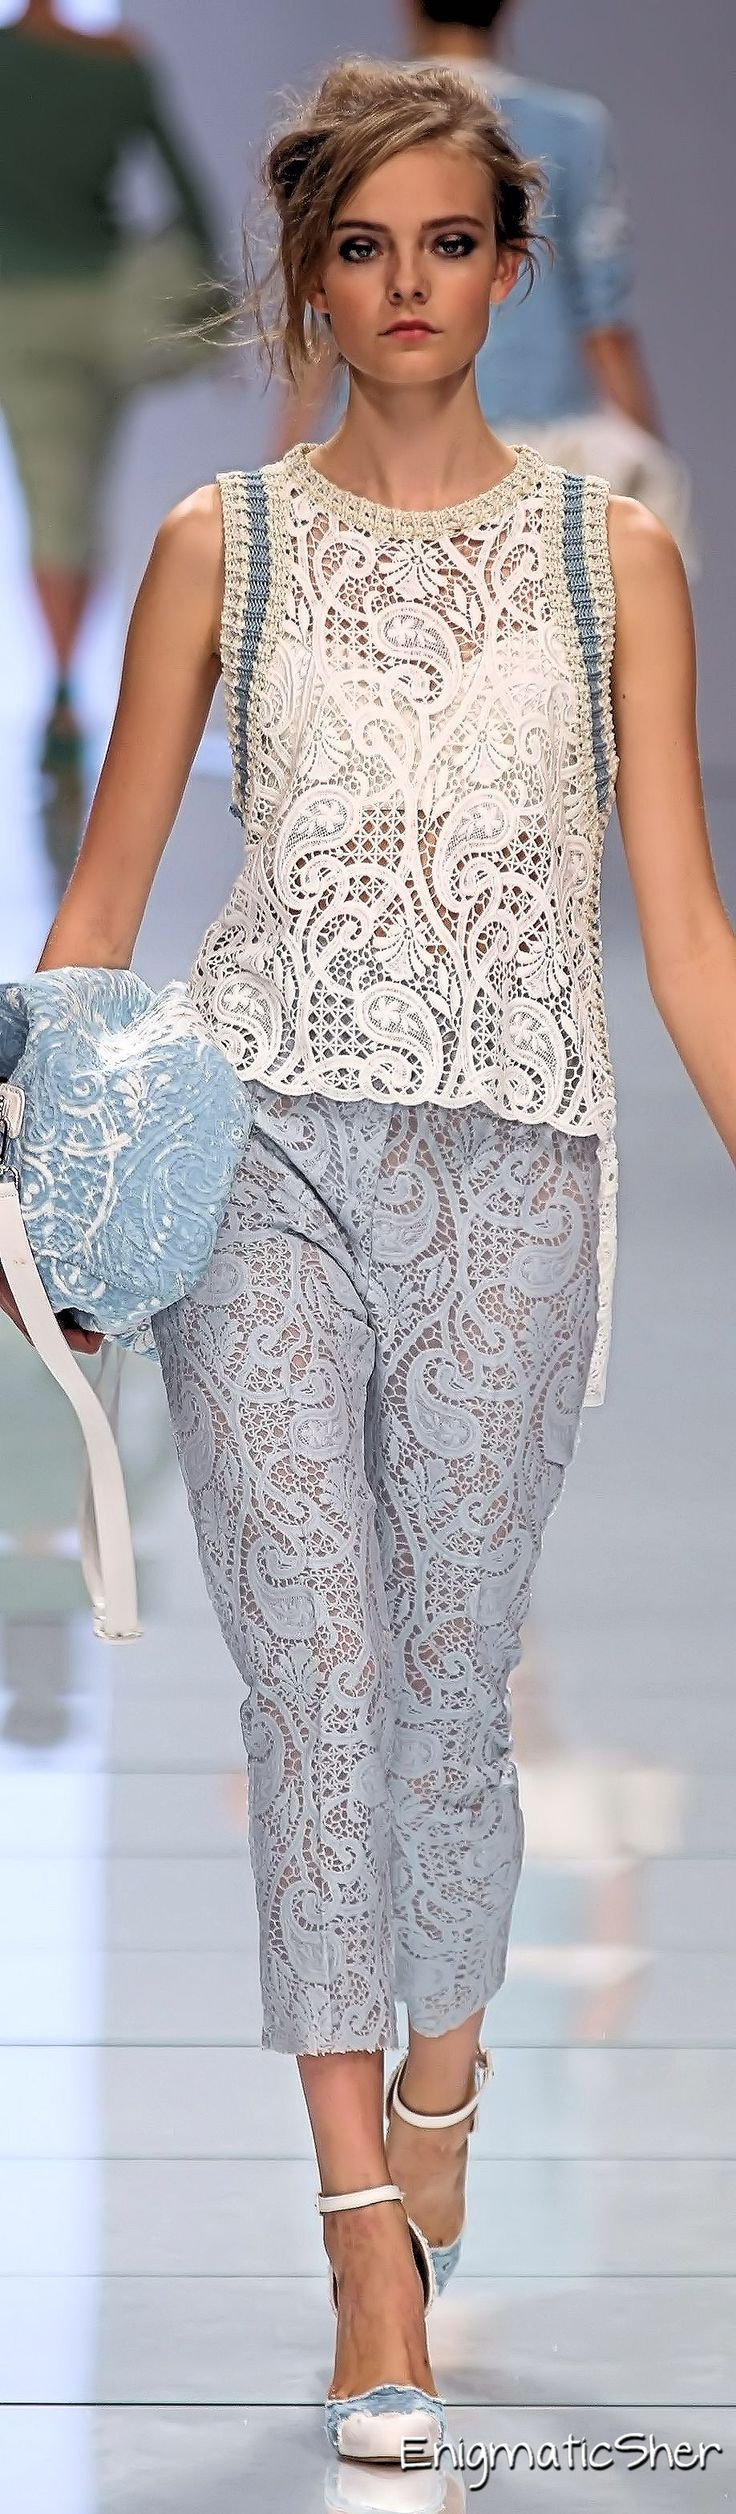 Ermanno Scervino Spring Summer 2012 Ready-To-Wear